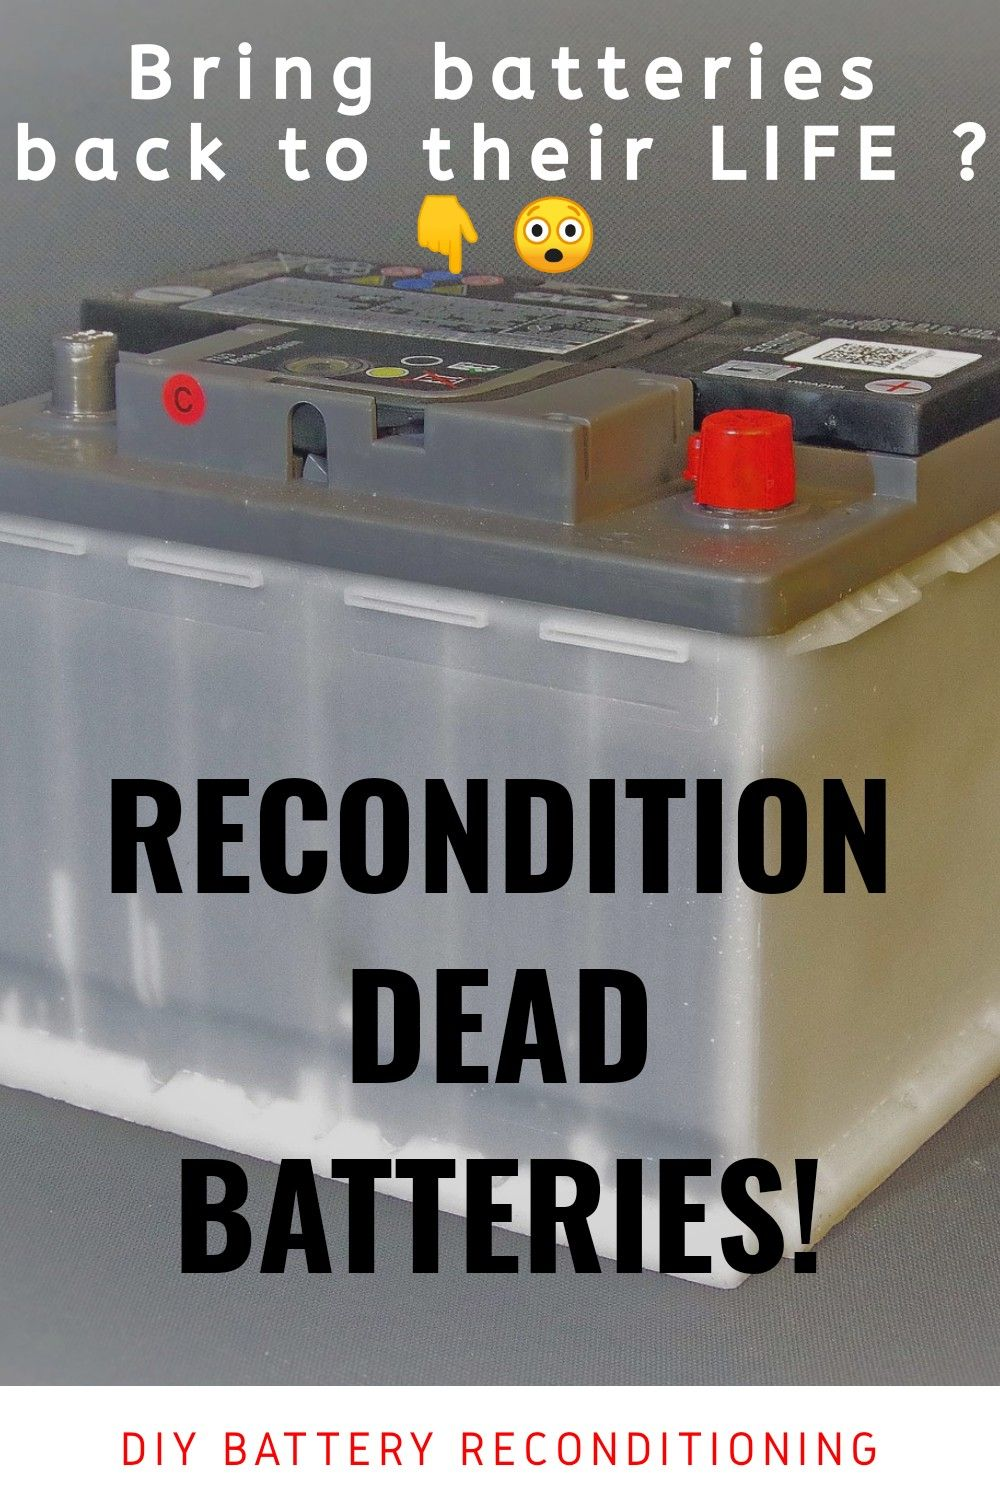 How To Repair Or Restore Any 12v Battery Ups Battery Or Car Battery Reuse Dead Battery Youtube Car Battery Hacks Dead Car Battery Recondition Batteries